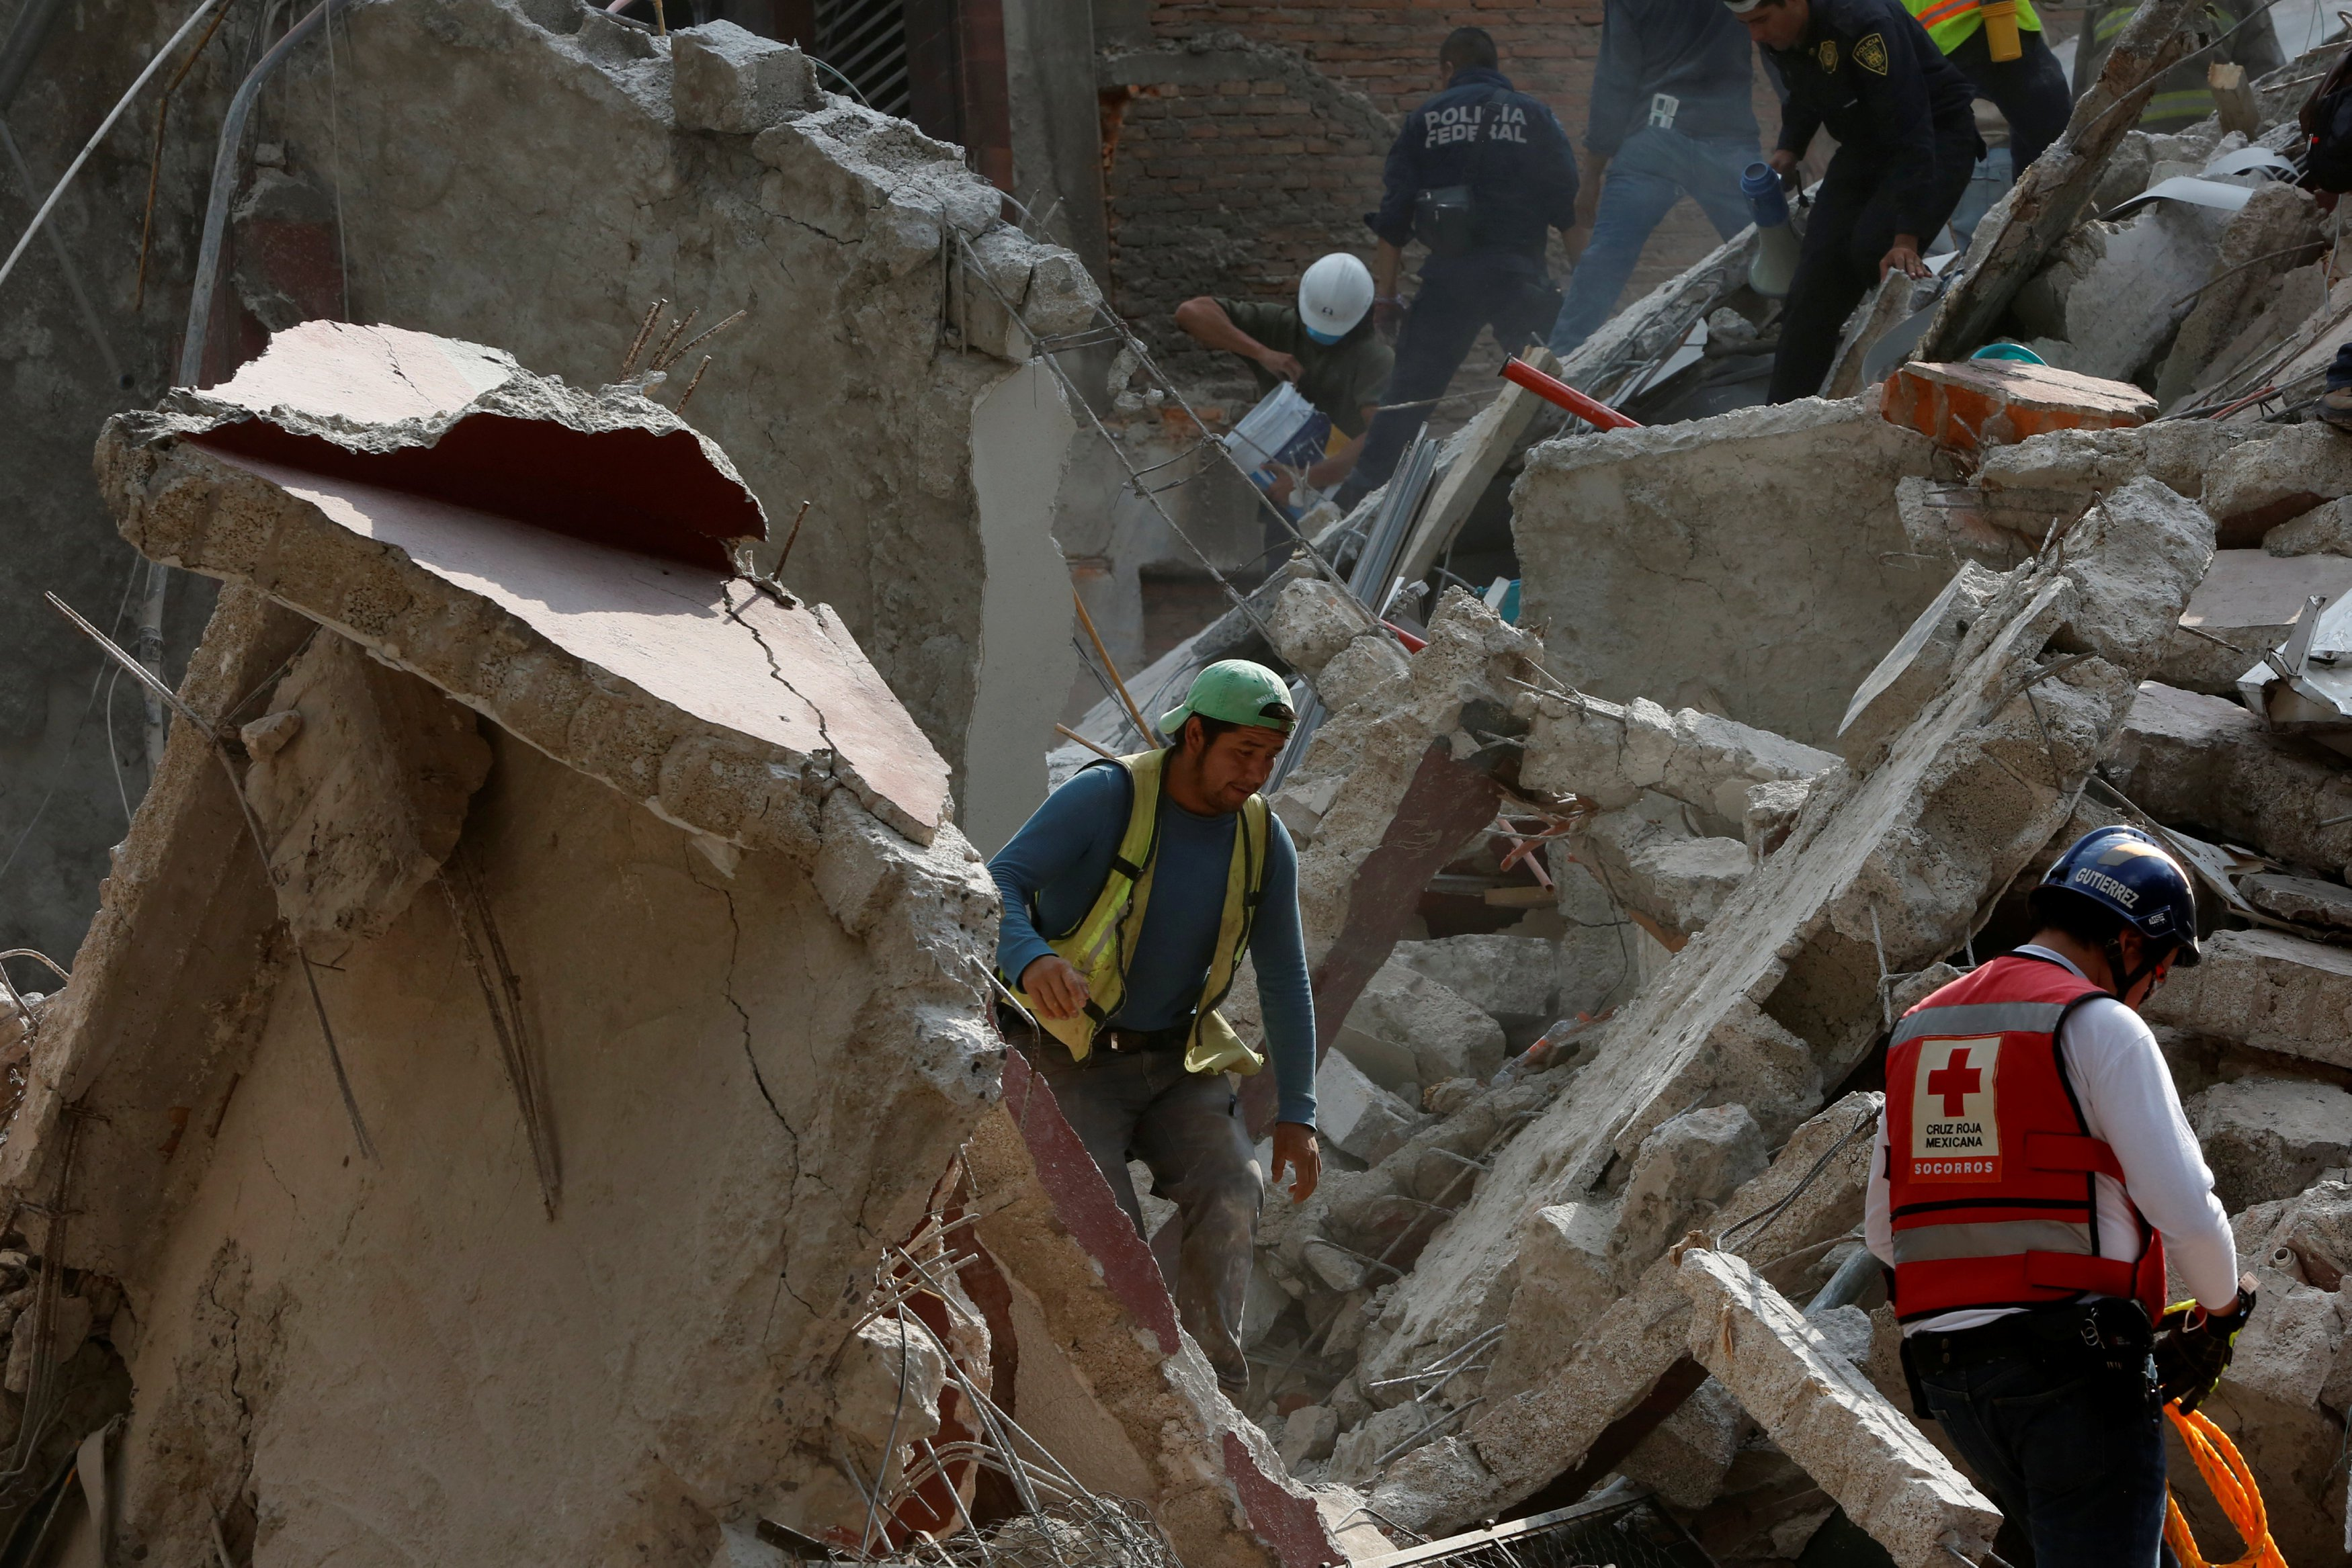 People clear rubble after an earthquake hit Mexico City, Mexico September 19, 2017. REUTERS/Carlos Jasso